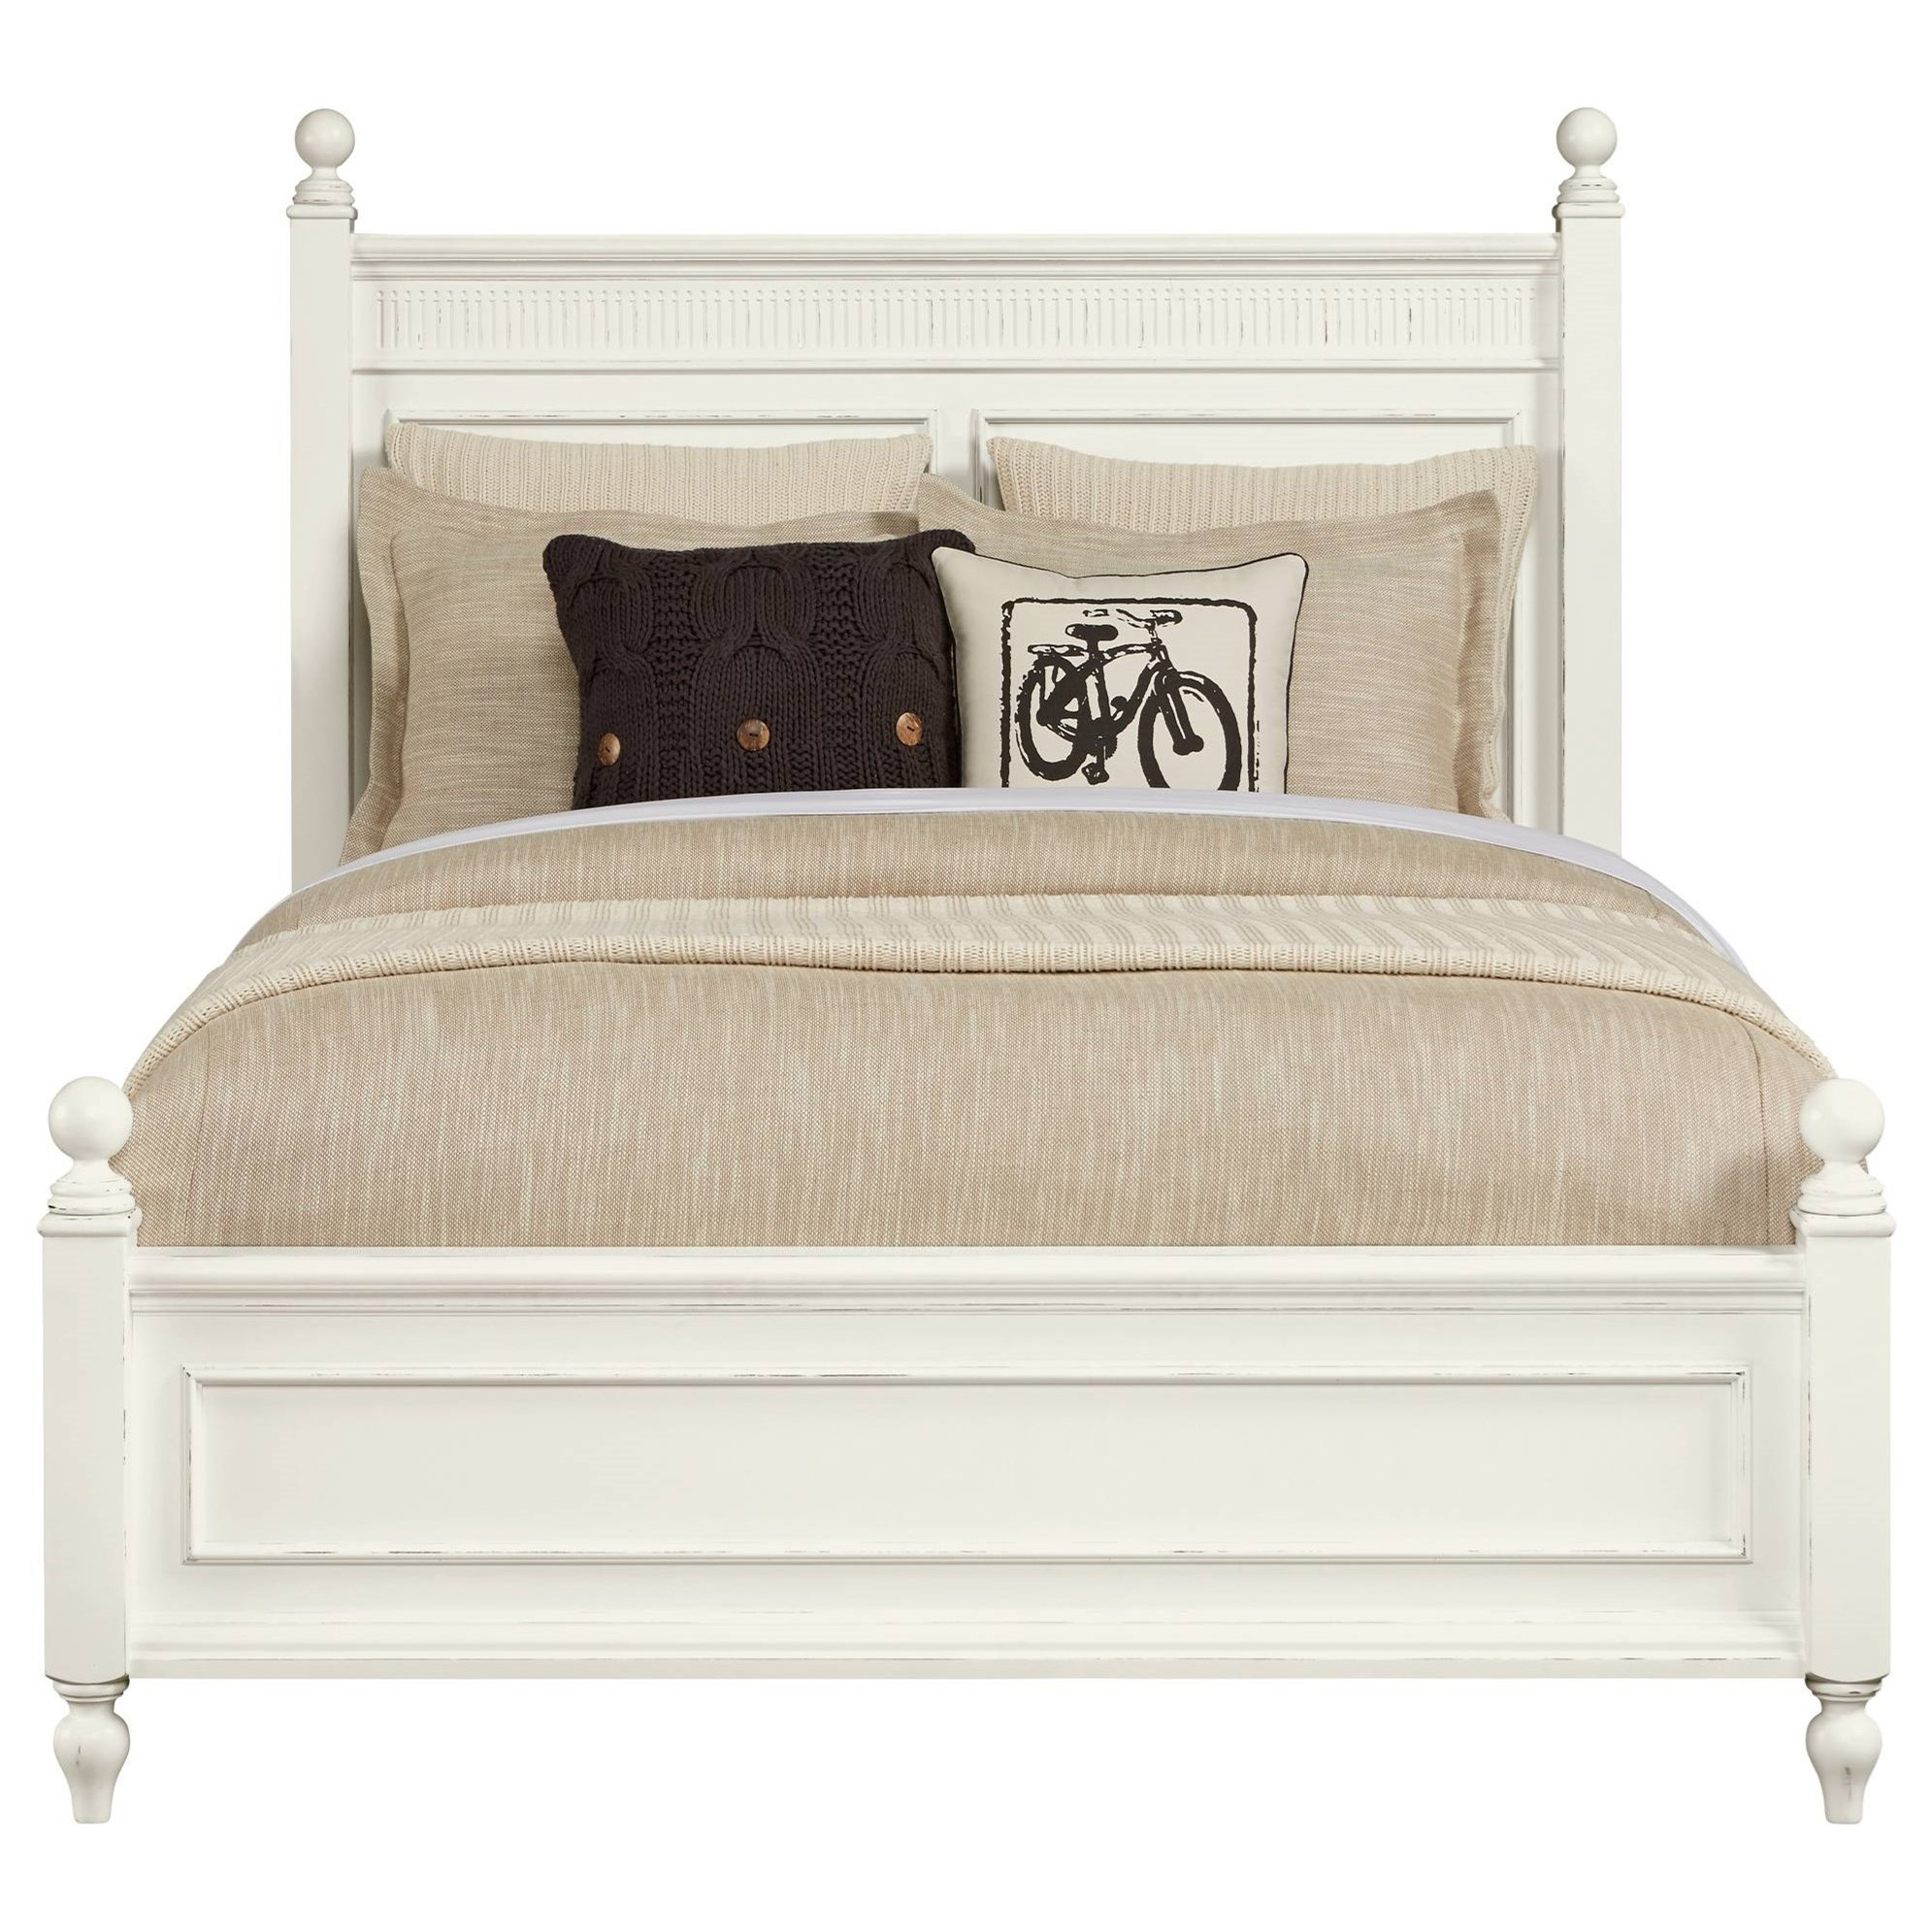 Stone Amp Leigh Furniture Smiling Hill Queen Panel Bed